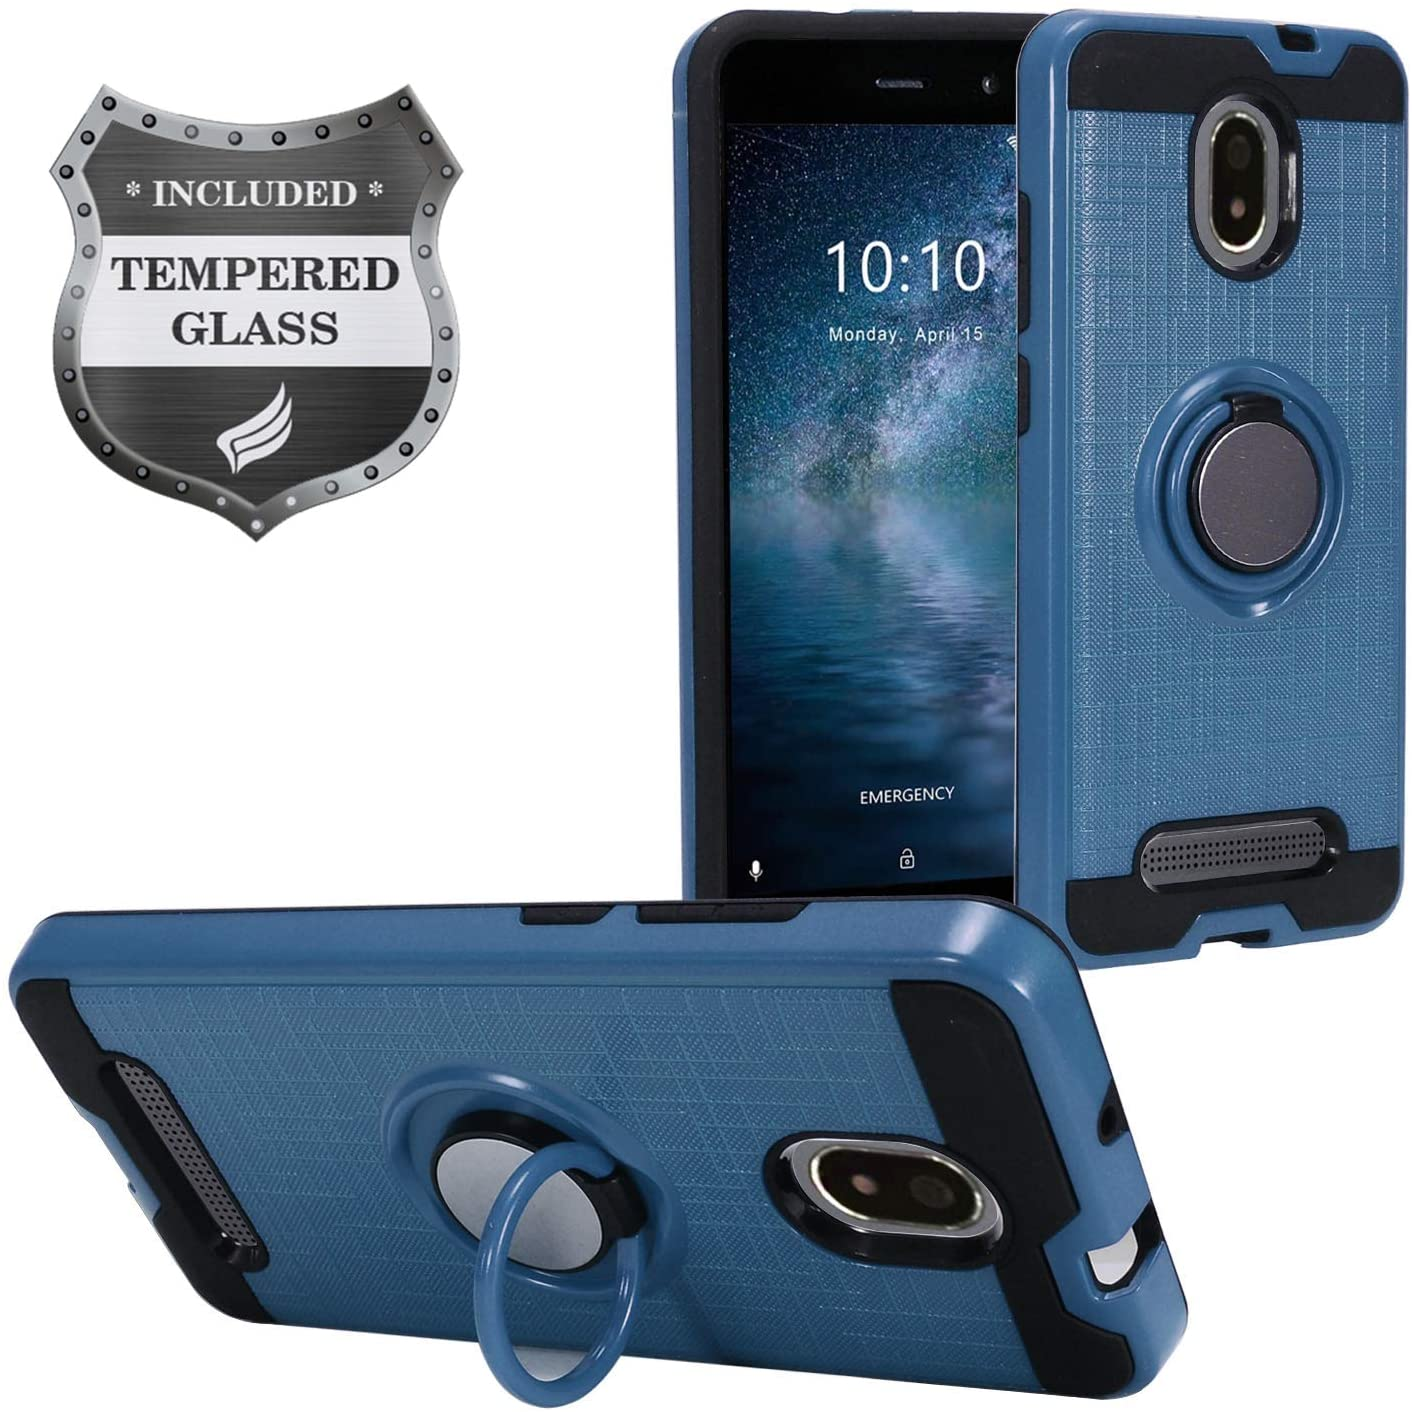 Eaglecell - Foxx Miro L590A FoxxD Miro (MetroPCS) - Hybrid Hard Case w/Ring Stand + Tempered Glass Screen Protector - RS2 Blue